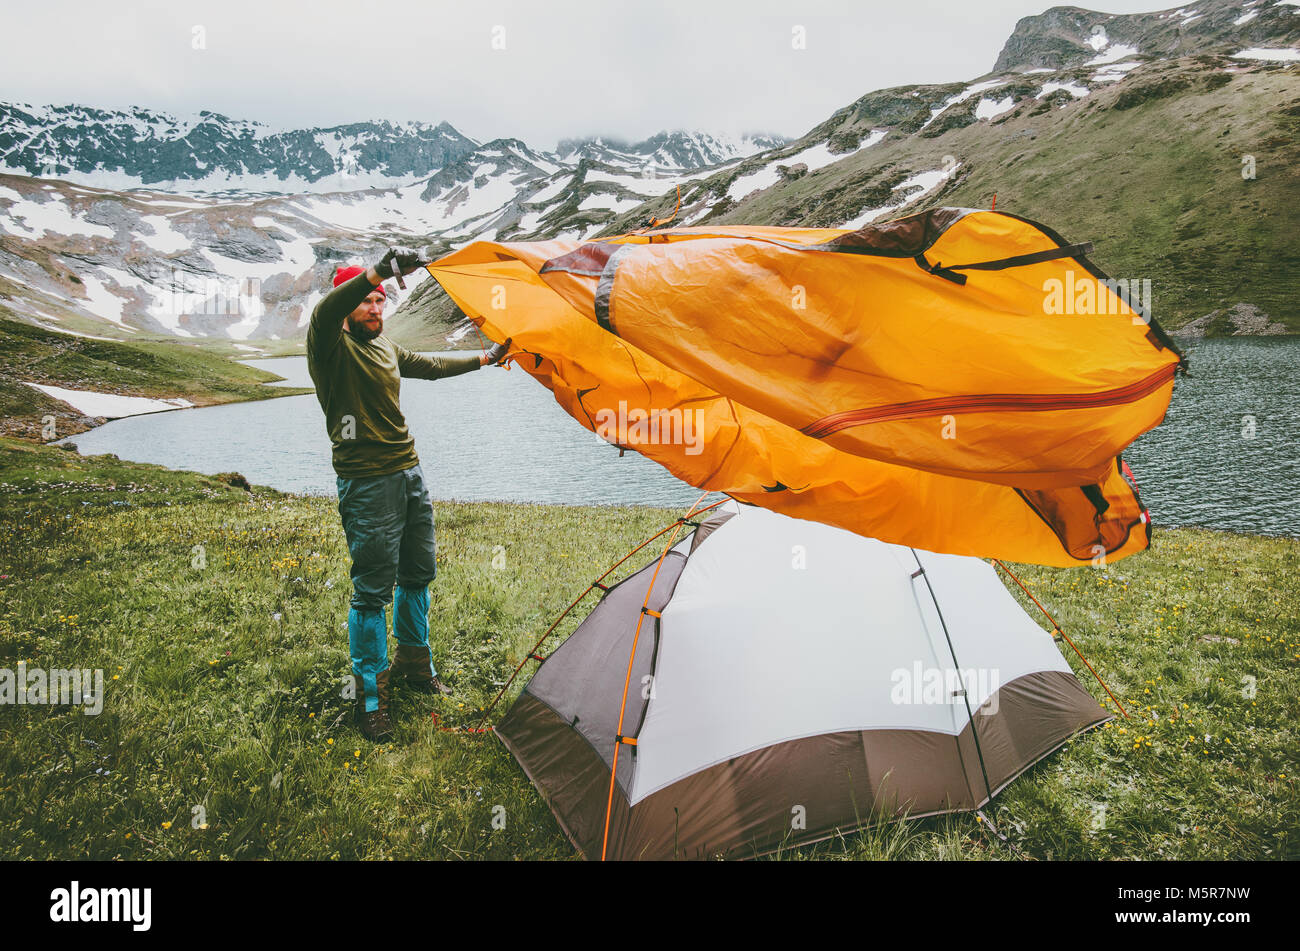 Man adventurer pitching tent camping gear outdoor Travel survival lifestyle concept summer trip vacations in mountains - Stock Image